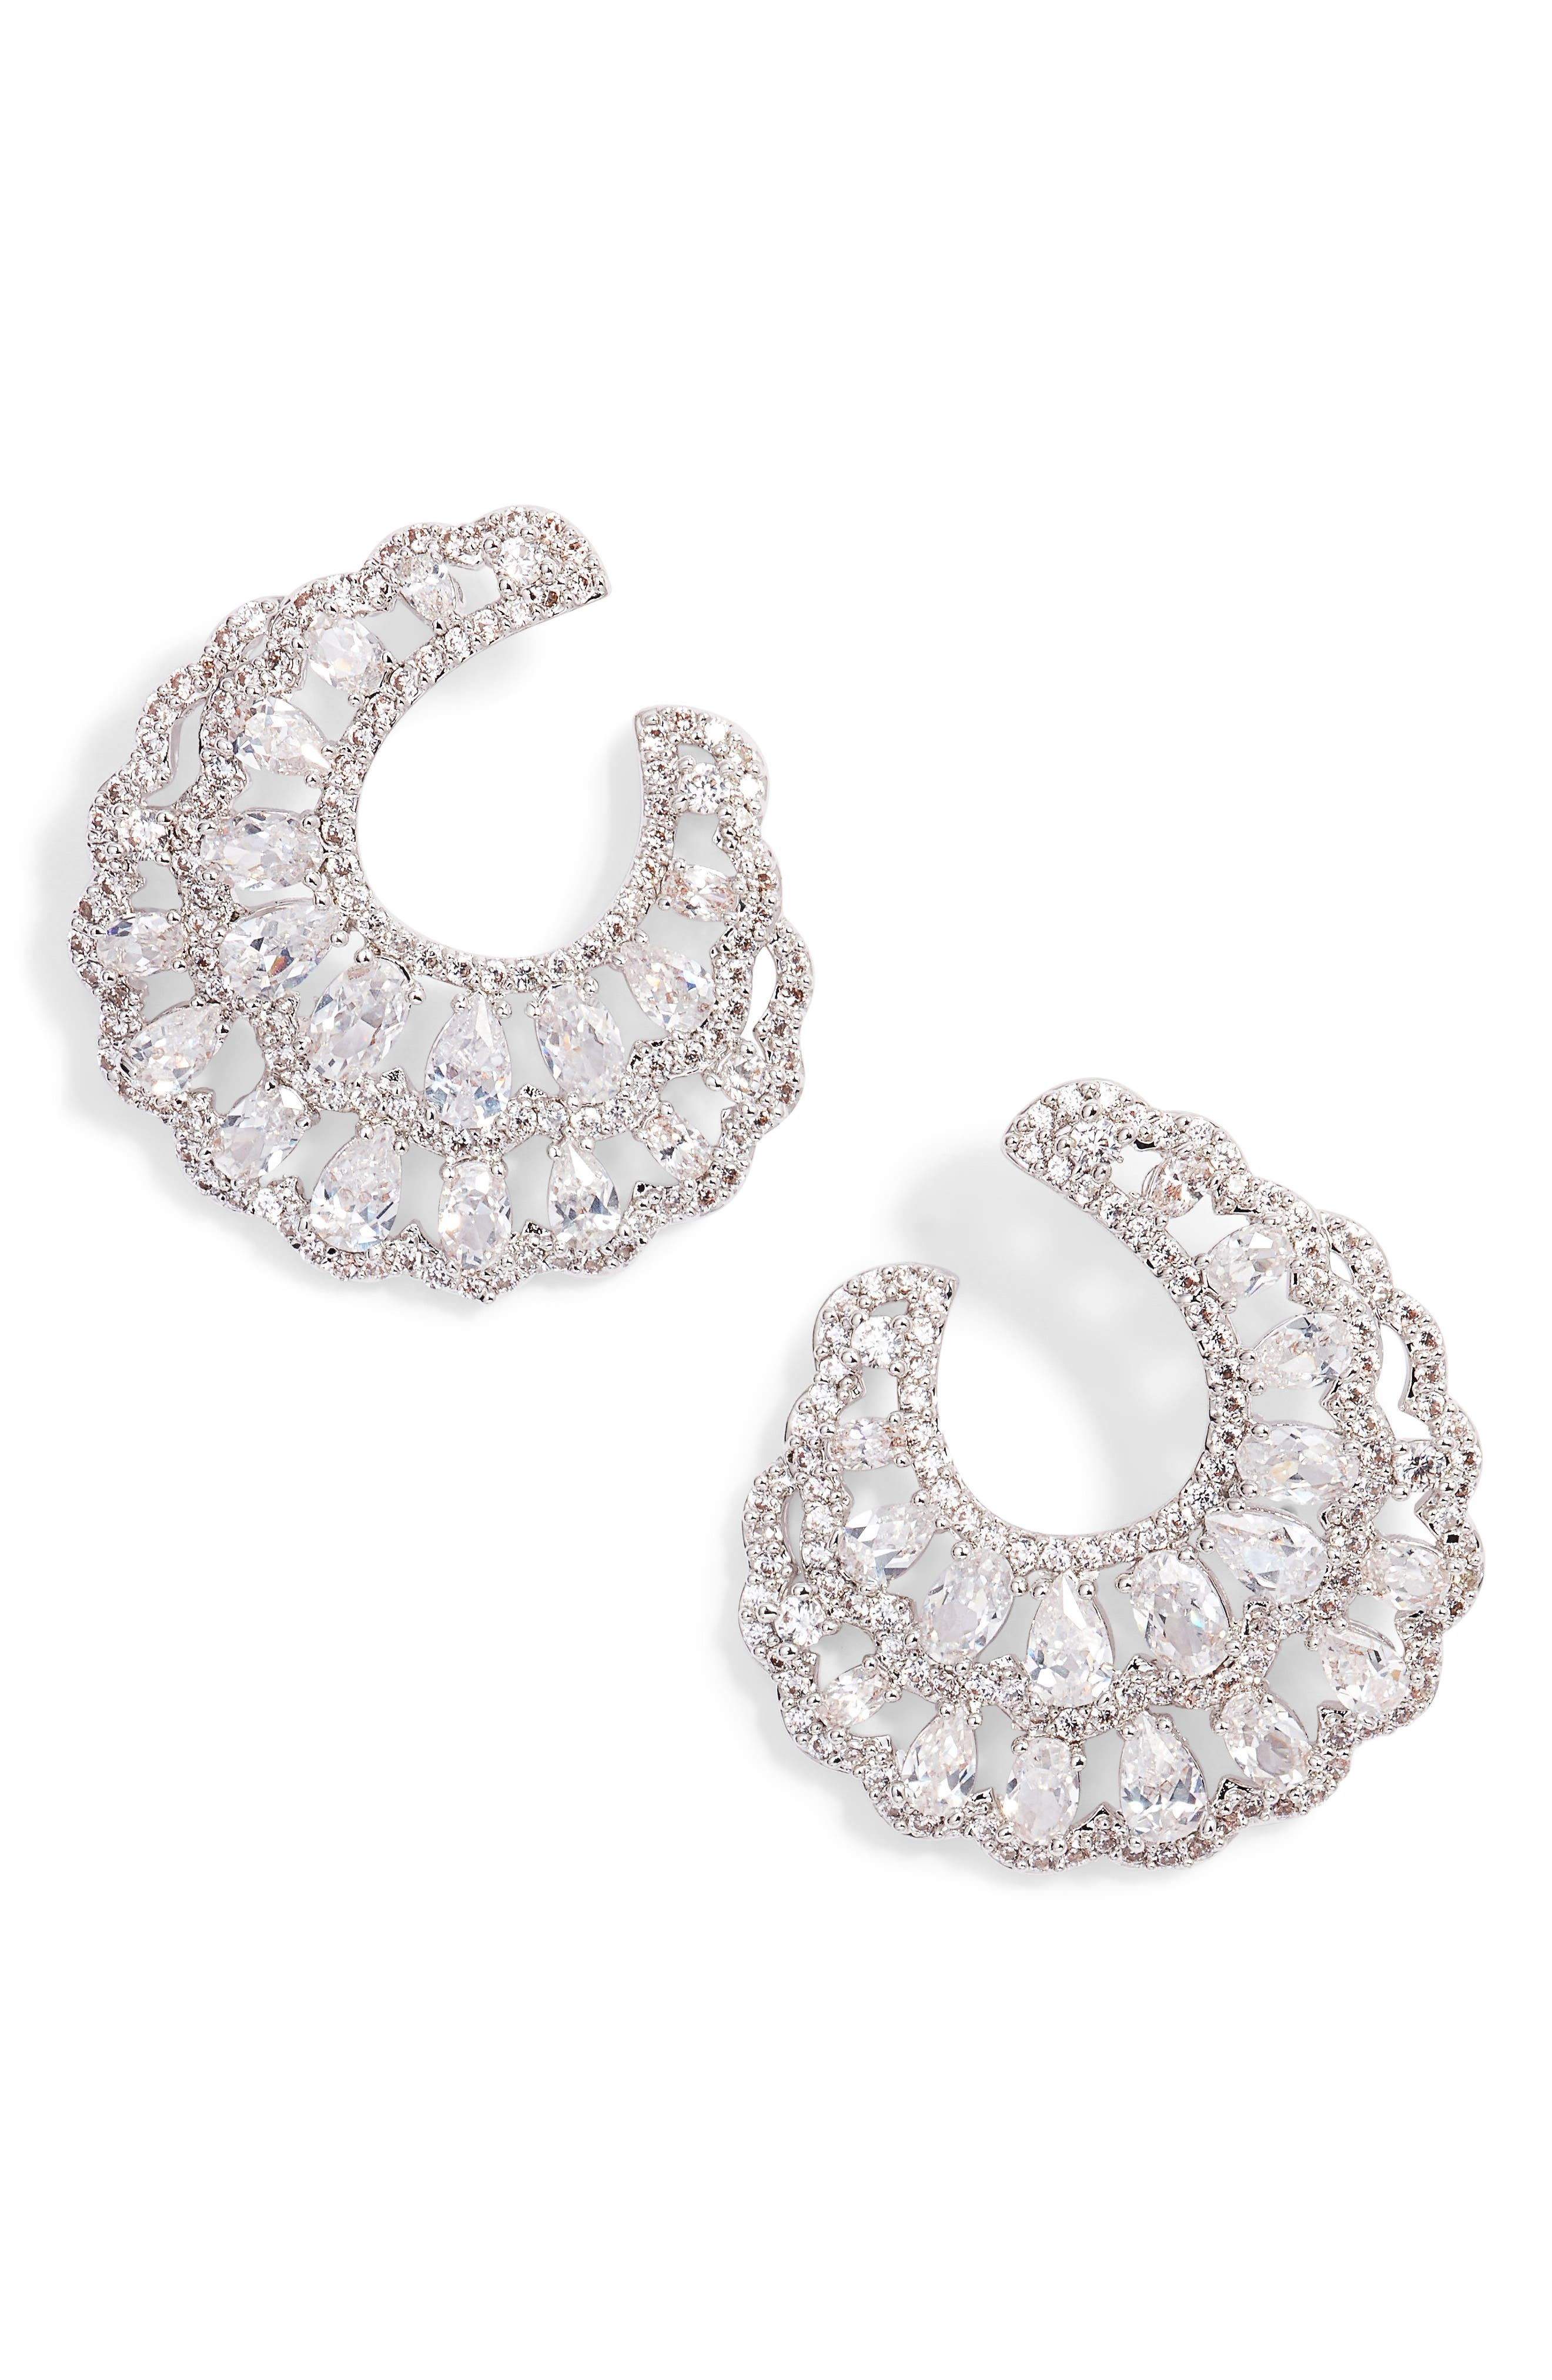 Layered Front/Back Hoop Earrings,                         Main,                         color, Silver/ White Cz